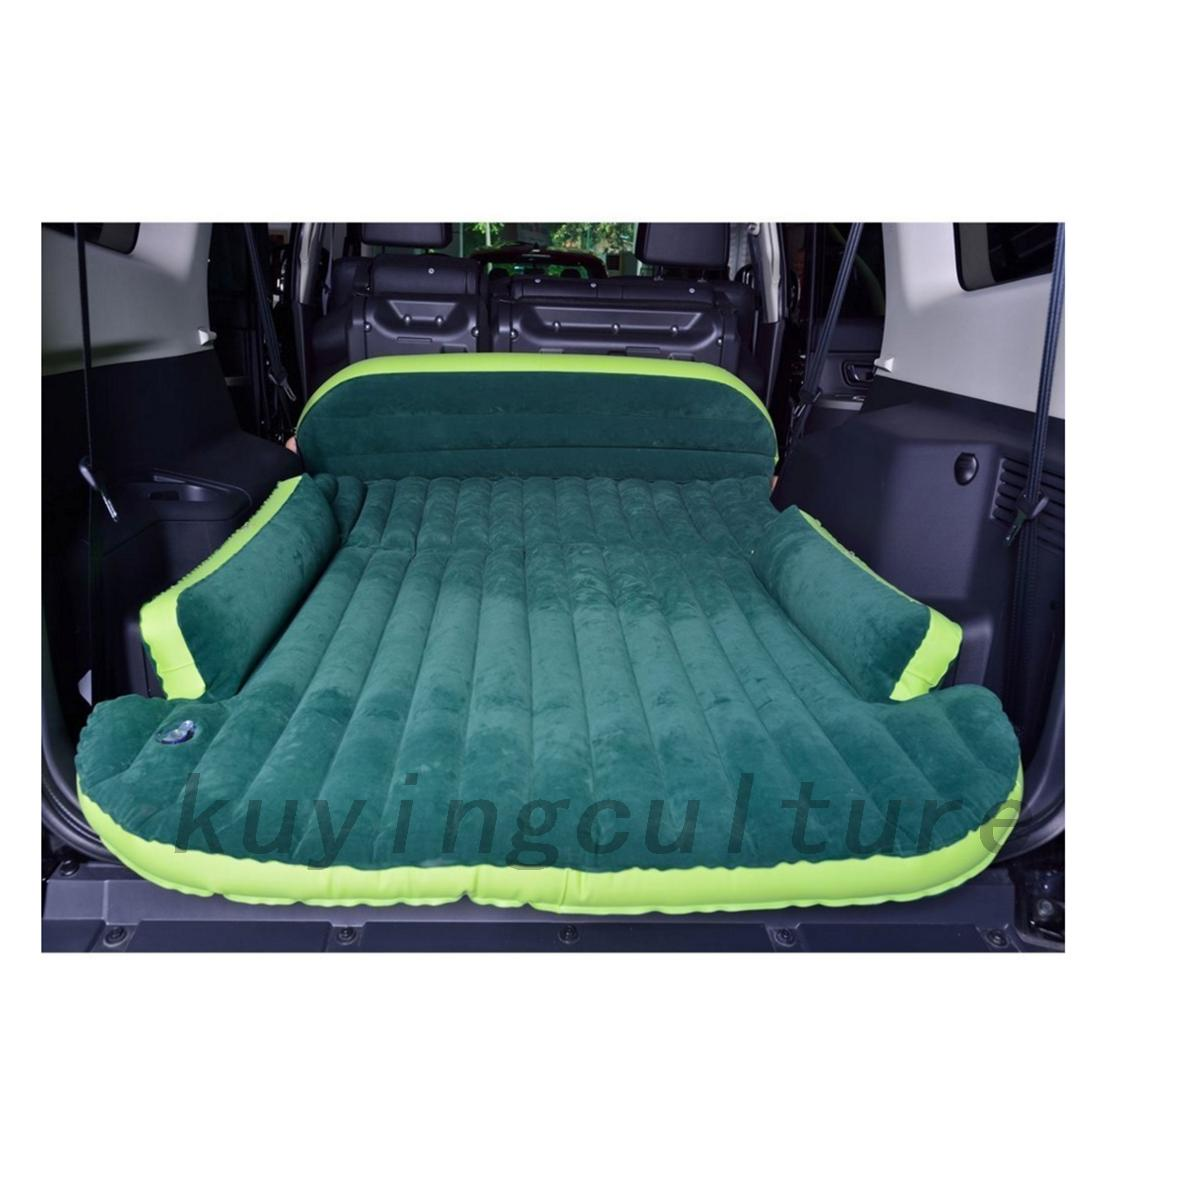 Green Car Travel Thicker Air Mattresses Bed Inflation Back